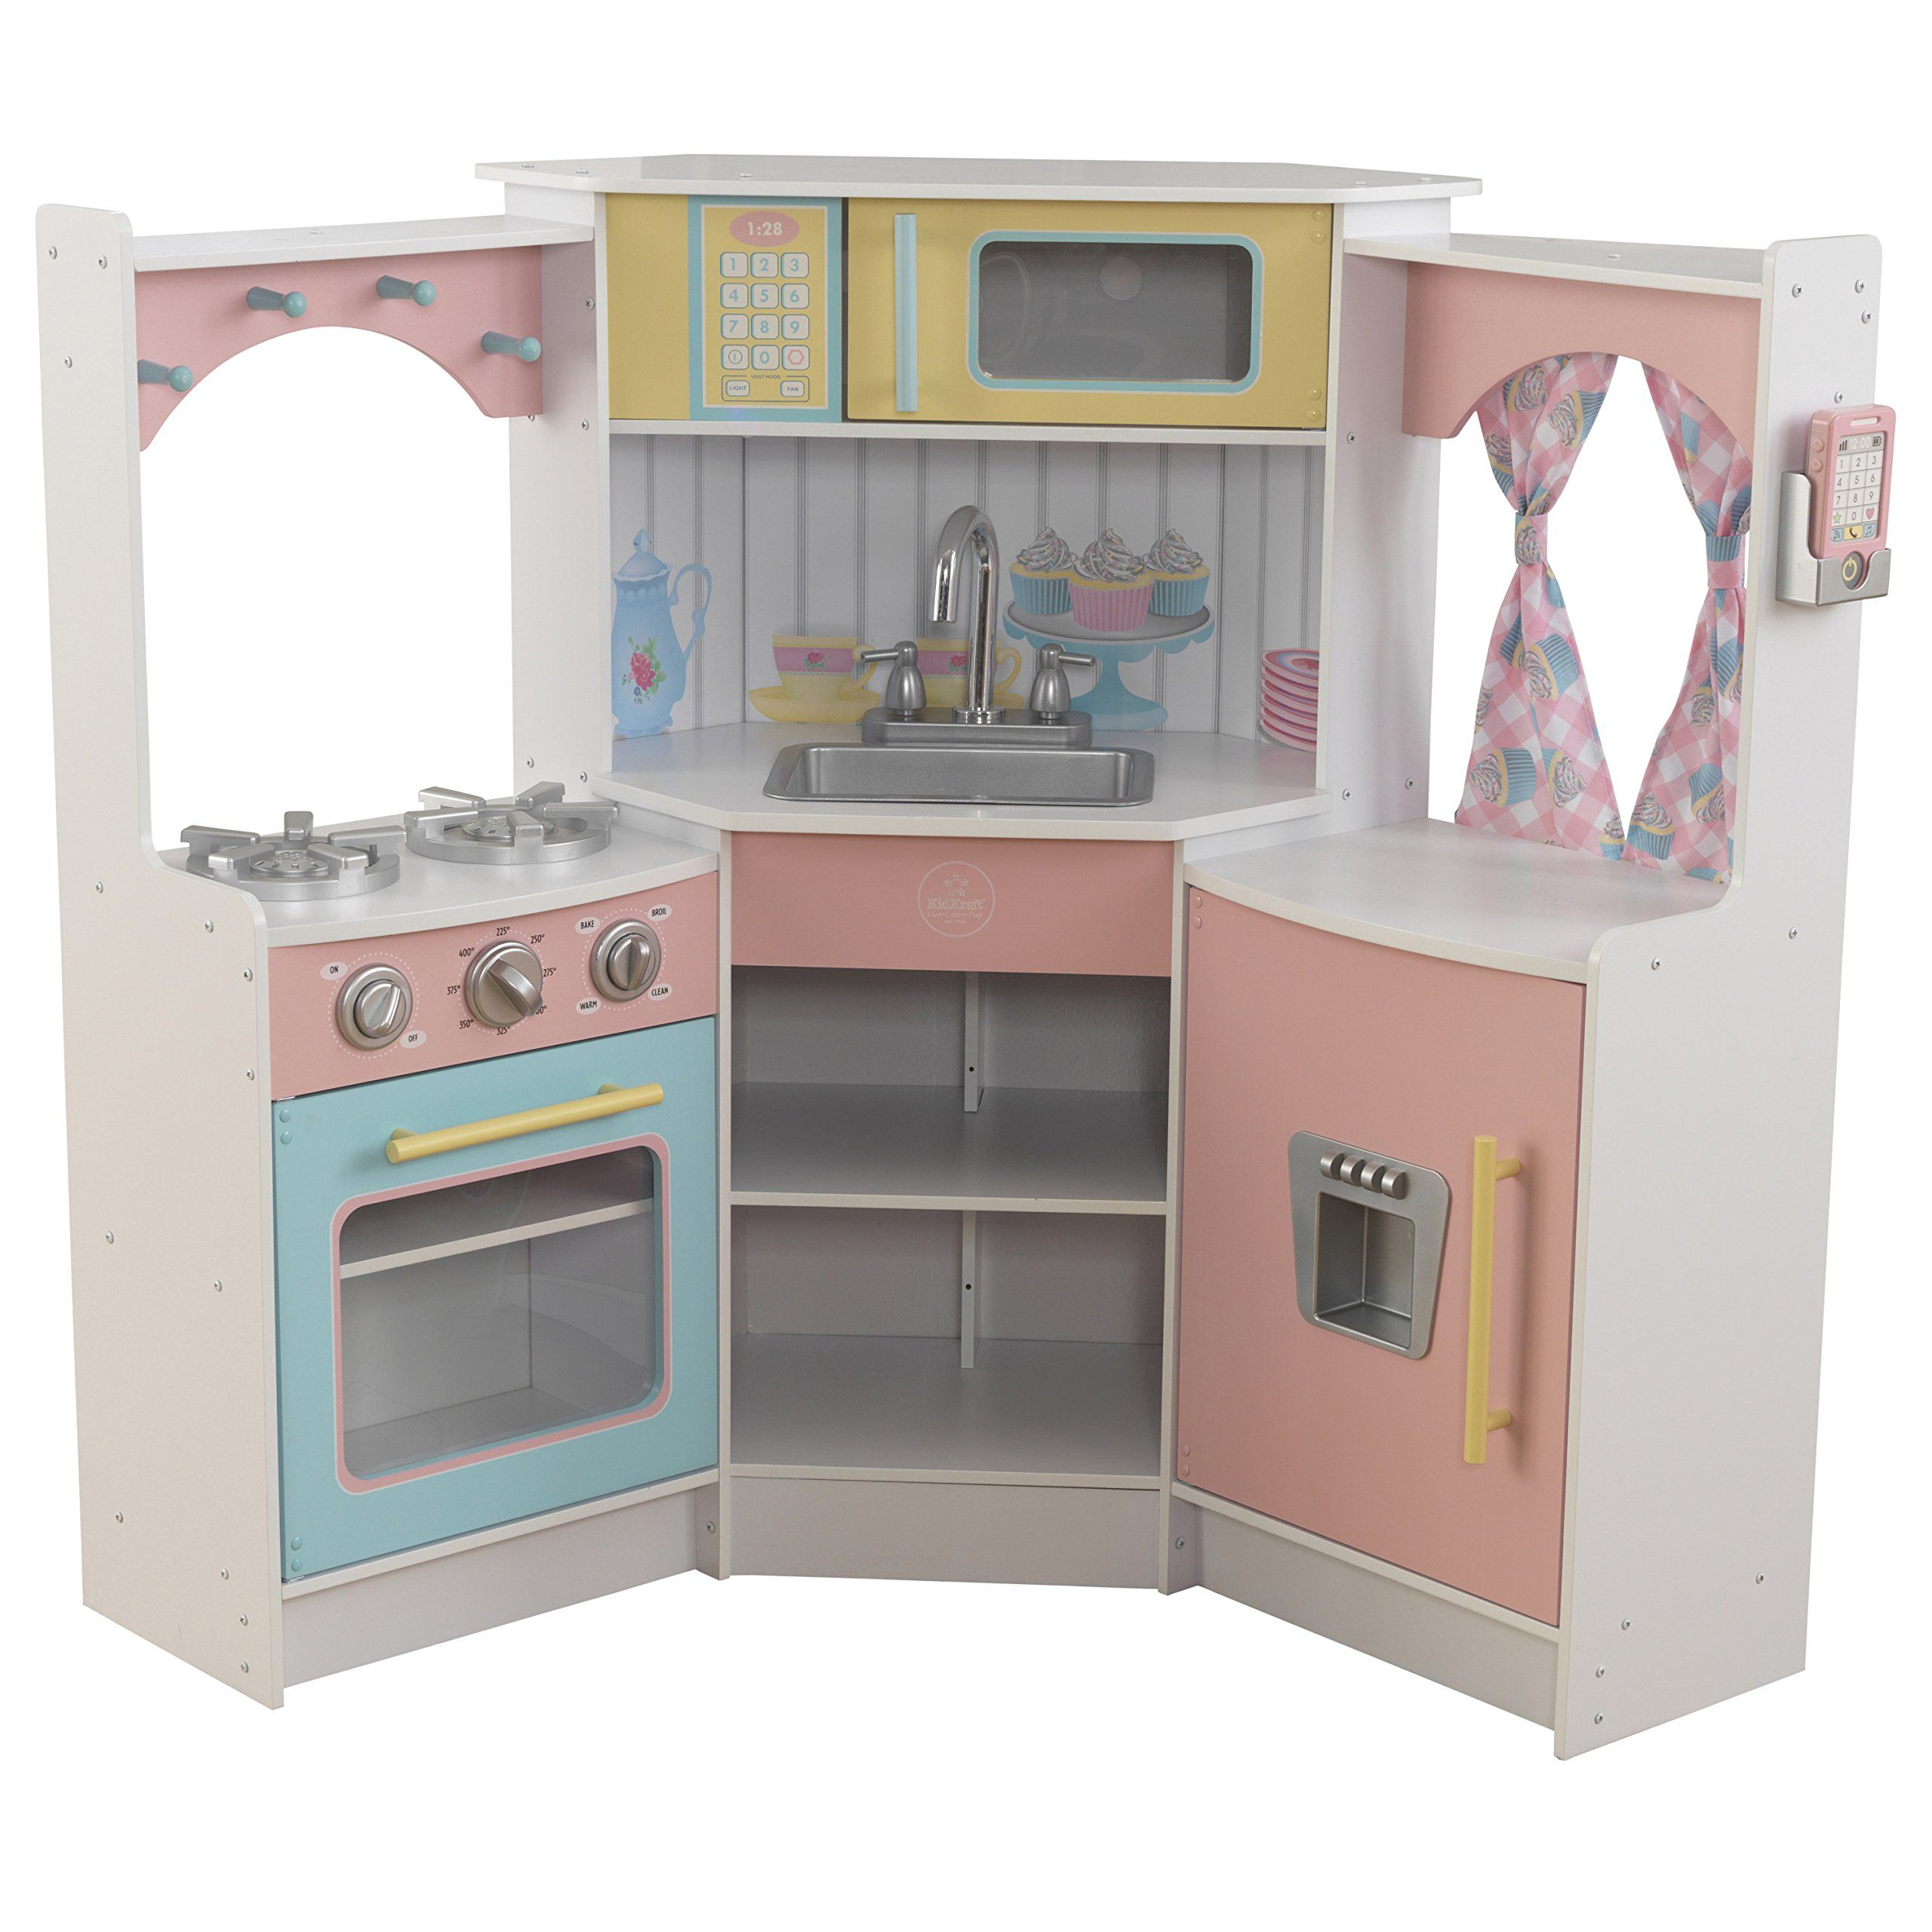 Kidkraft Kids Kitchen Playset White You Could Get More Details By Clicking On The Picture This Pretend Play Kitchen Play Kitchen Kidkraft Vintage Kitchen